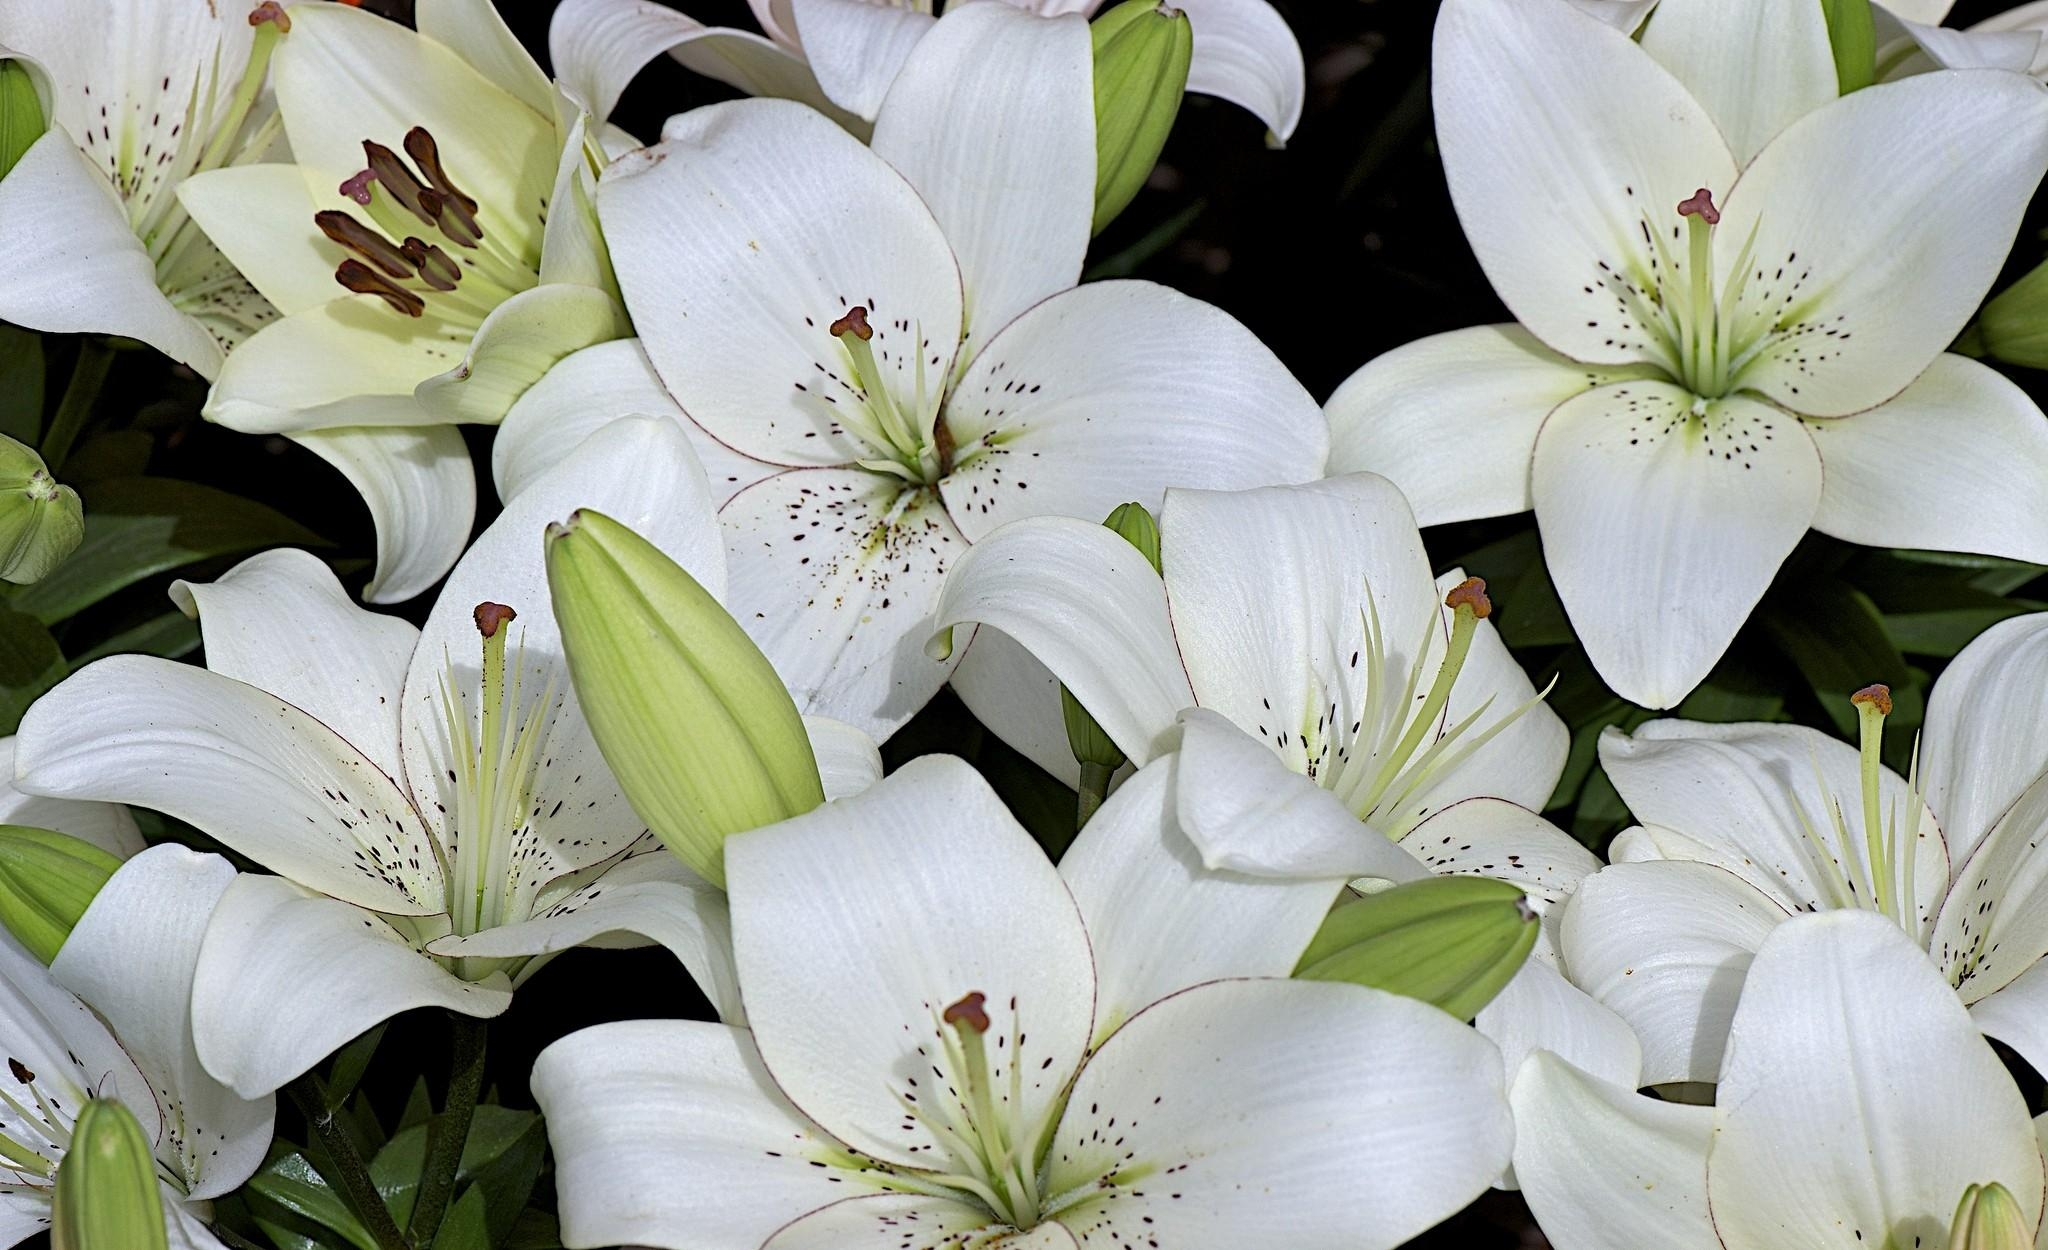 127873 download wallpaper Flowers, Lilies, Buds, Lot, Snow White screensavers and pictures for free